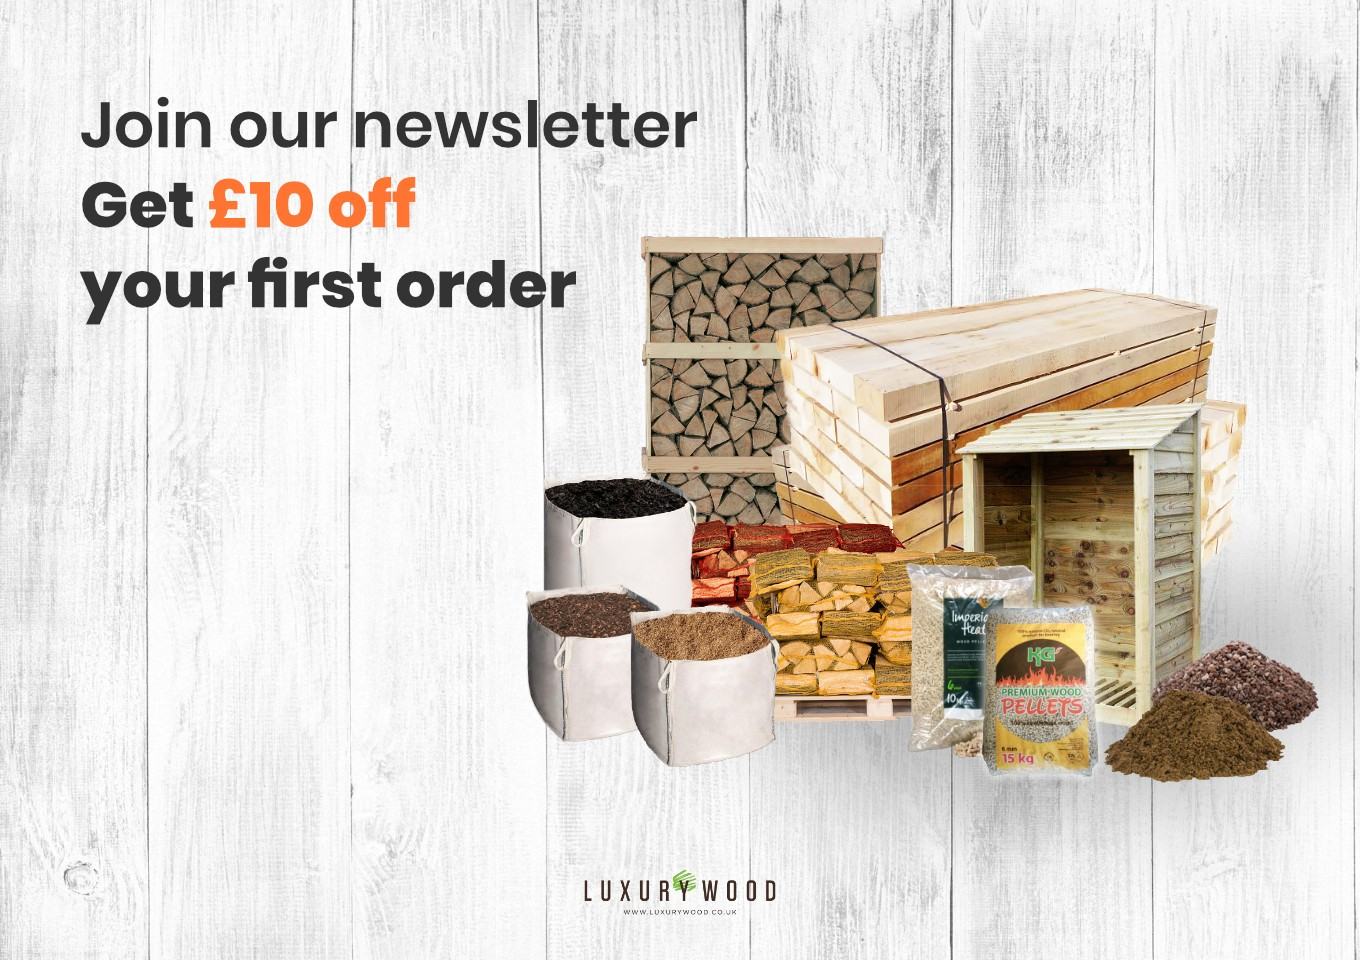 Join our newsletter to get £10 off your first order